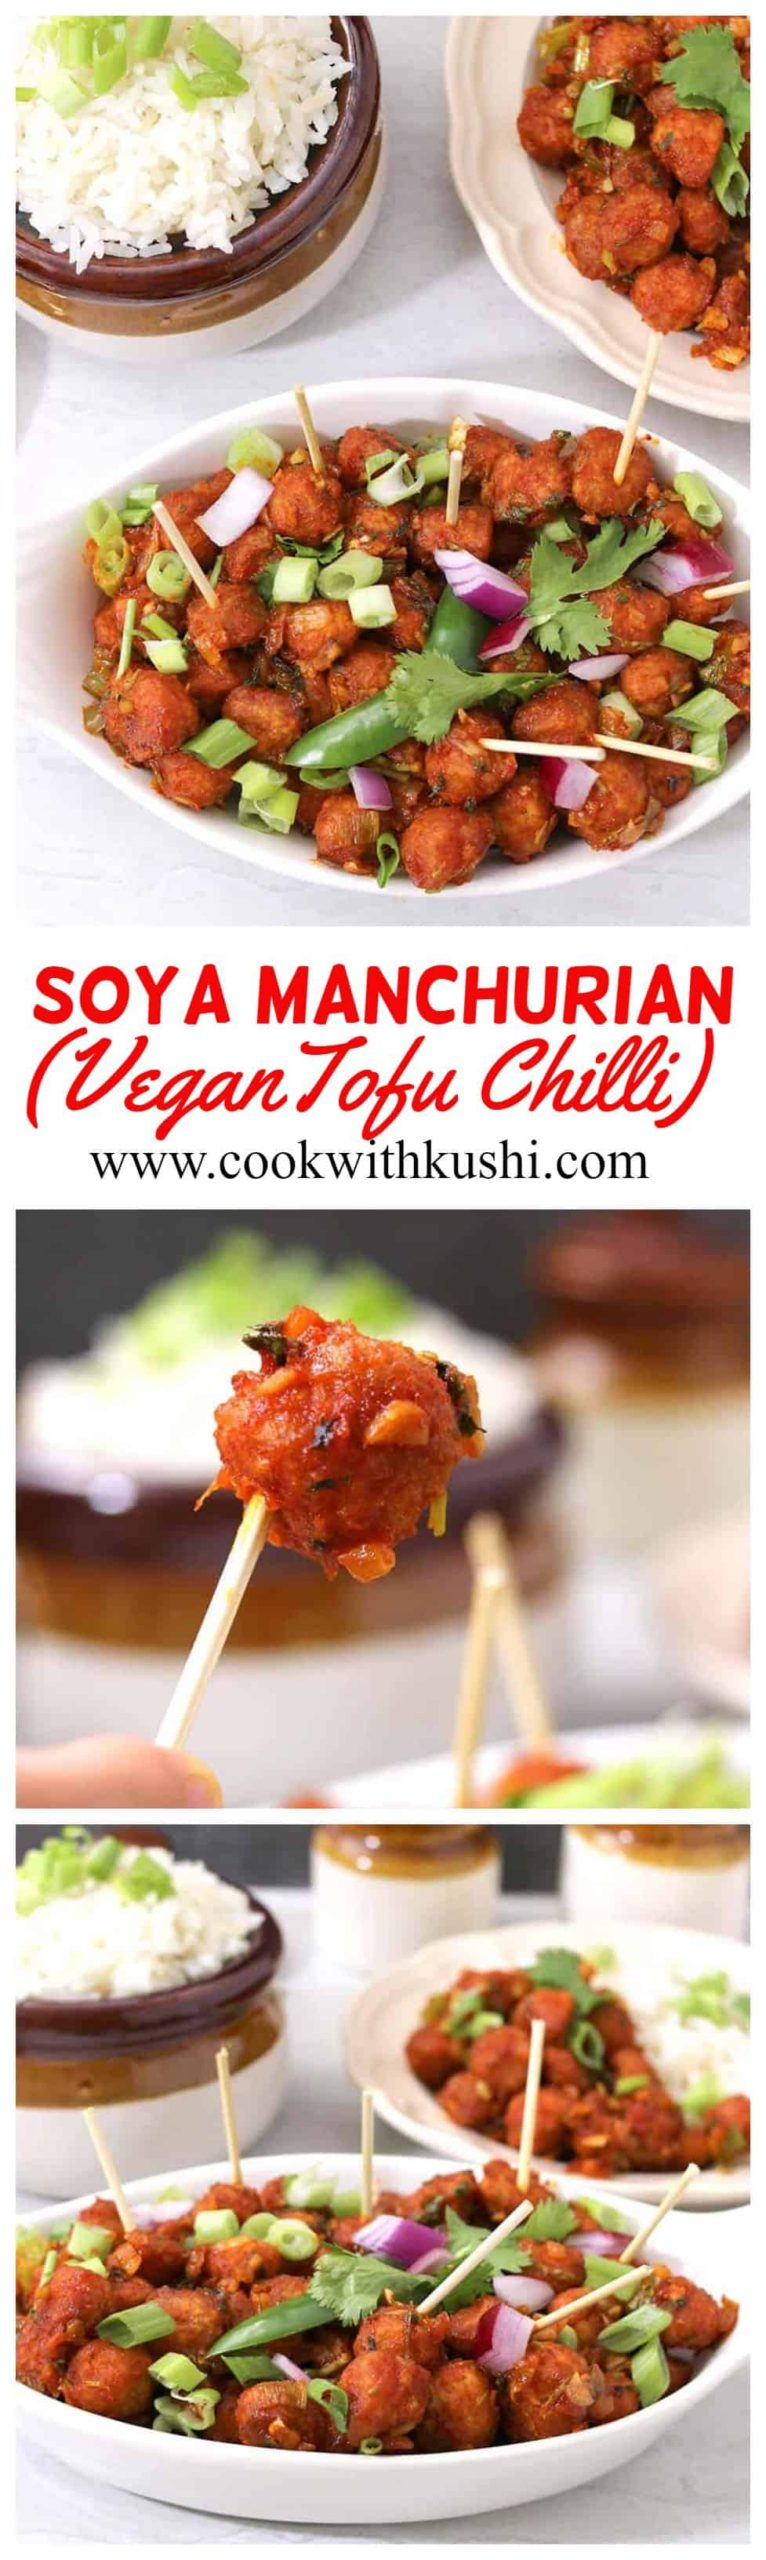 Soya Manchurian or Soya Chilli is a hot and spicy, sweet and sour, chewy and crispy – all in one Indo-chinese starter or appetizer. #tofurecipesvegan #soyachilli #soyamachurian #soyachunks #soyanuggets #soyabean #indochineserecipes